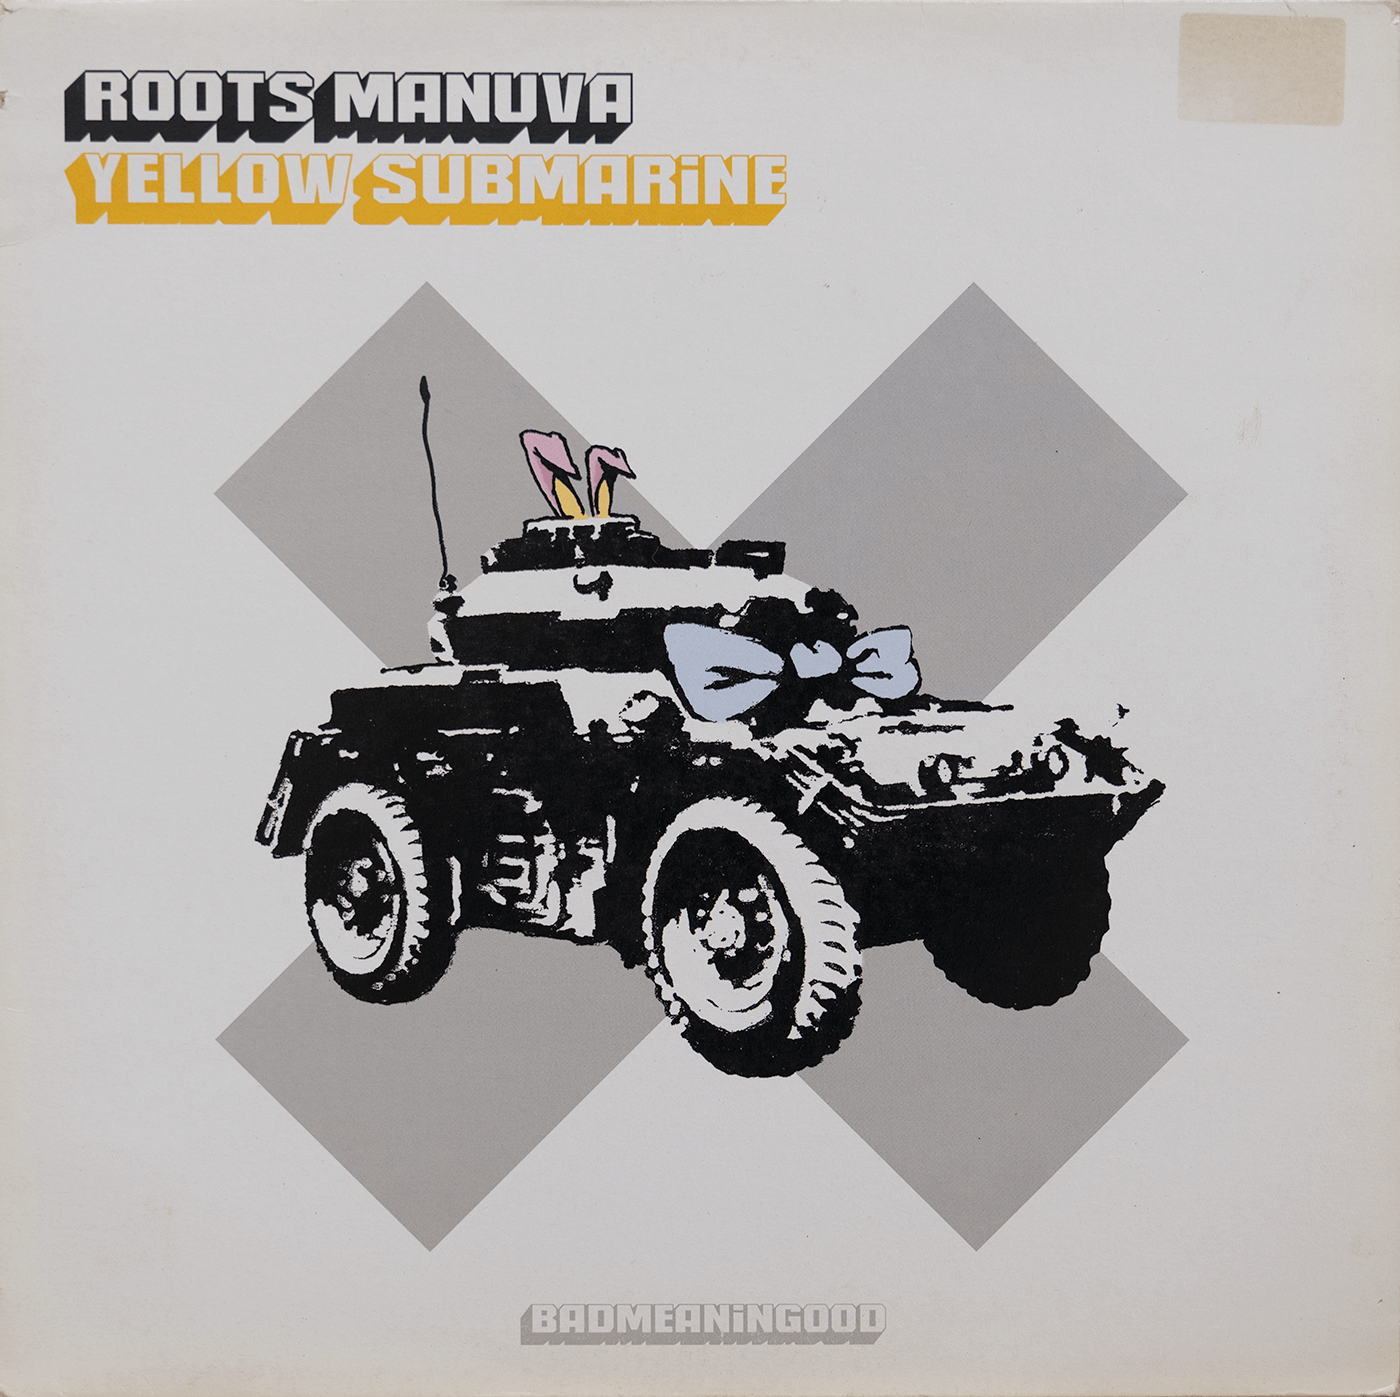 Yellow Submarine by Roots Manuva Vinyl 12